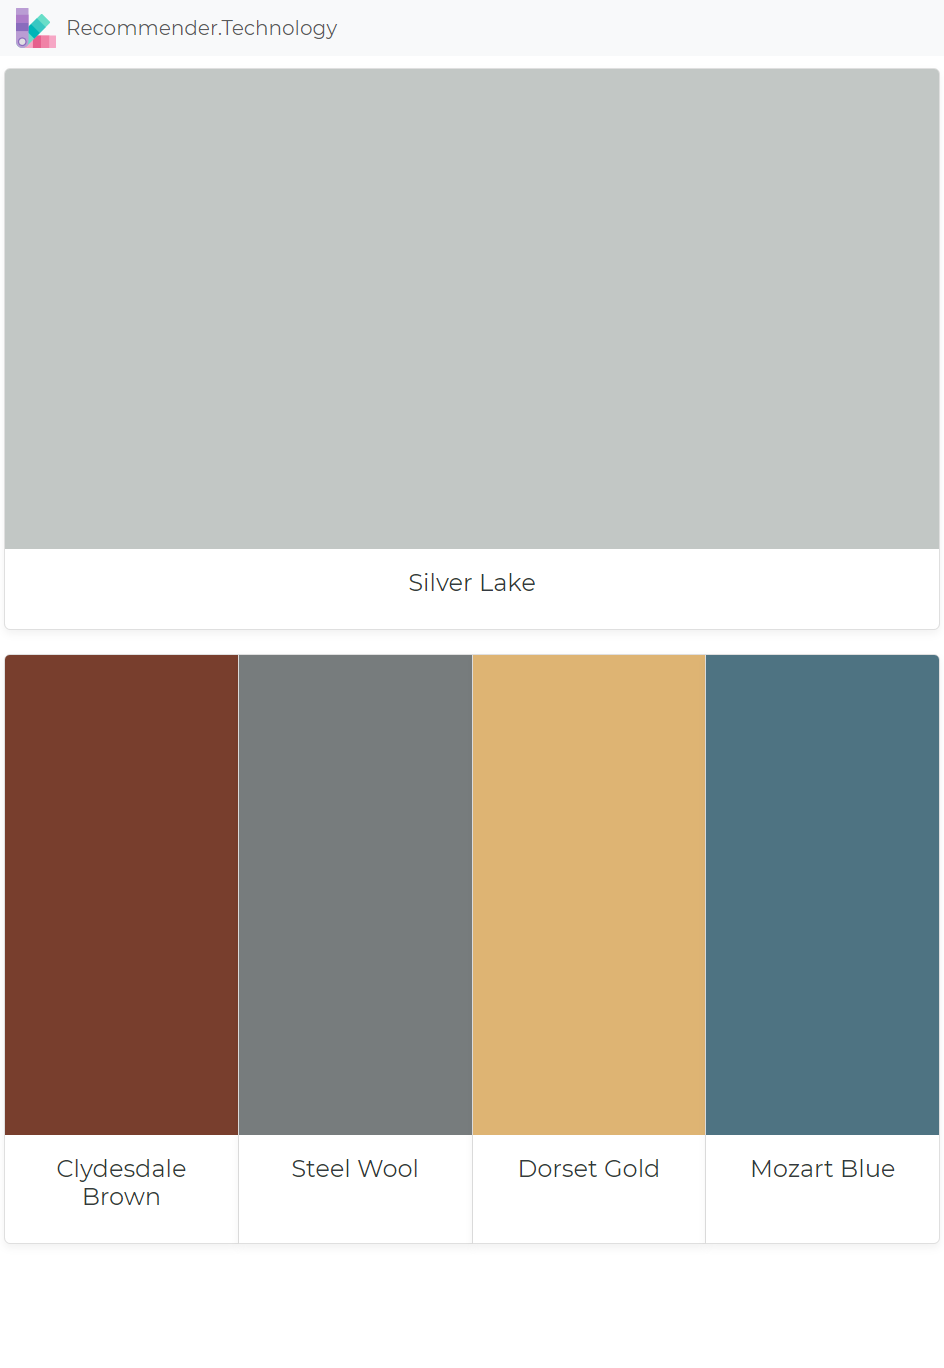 Silver Lake Clydesdale Brown Steel Wool Dorset Gold Mozart Blue Silver Color Palette Paint Colors Benjamin Moore Perfect Paint Color